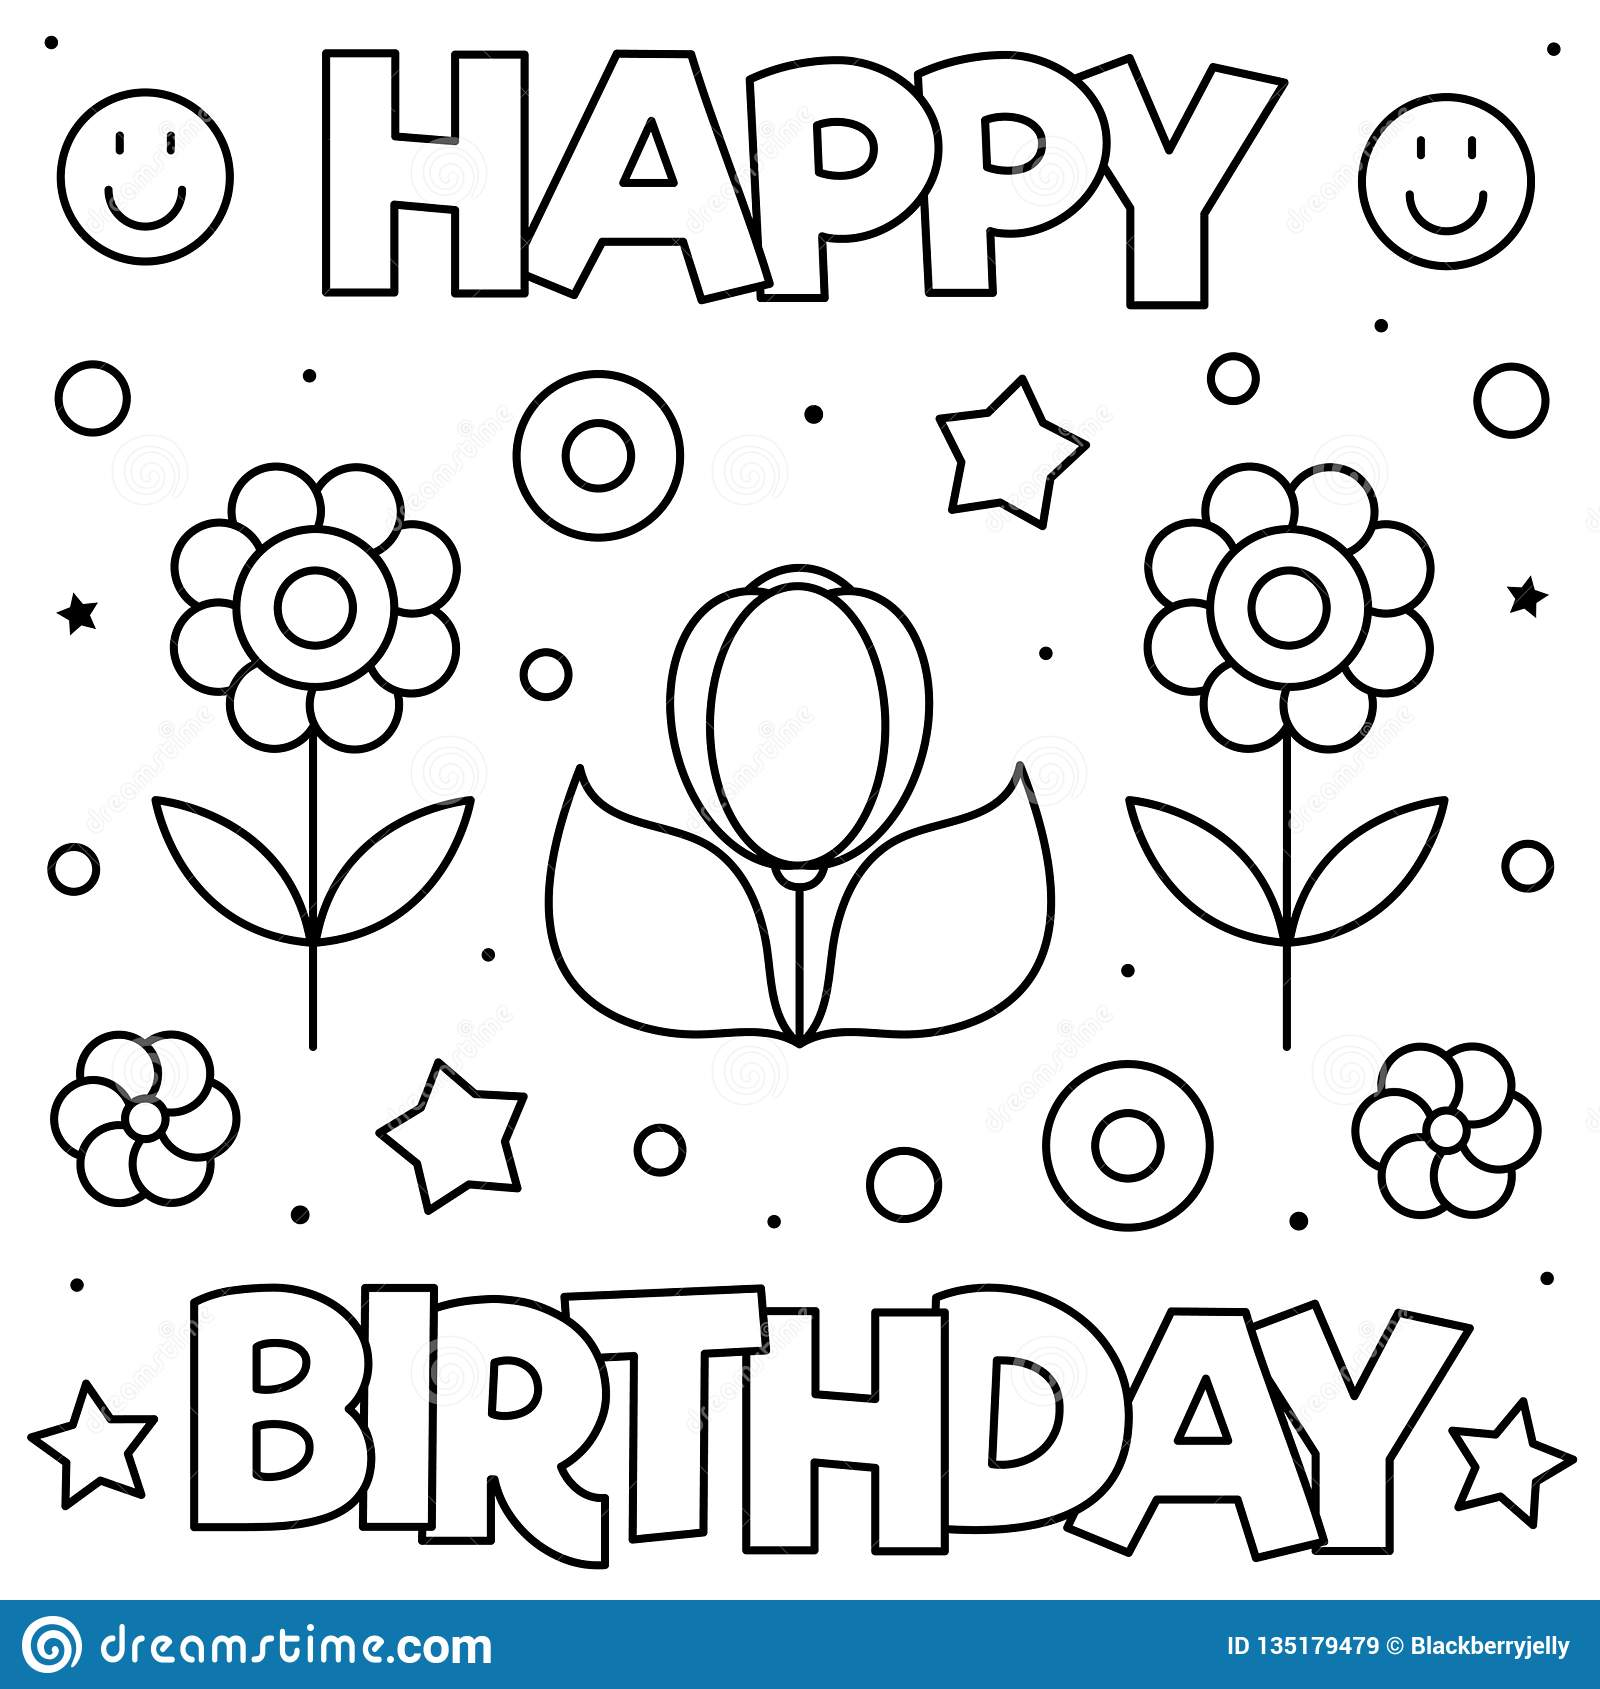 Happy Birthday. Coloring Page. Black And White Vector